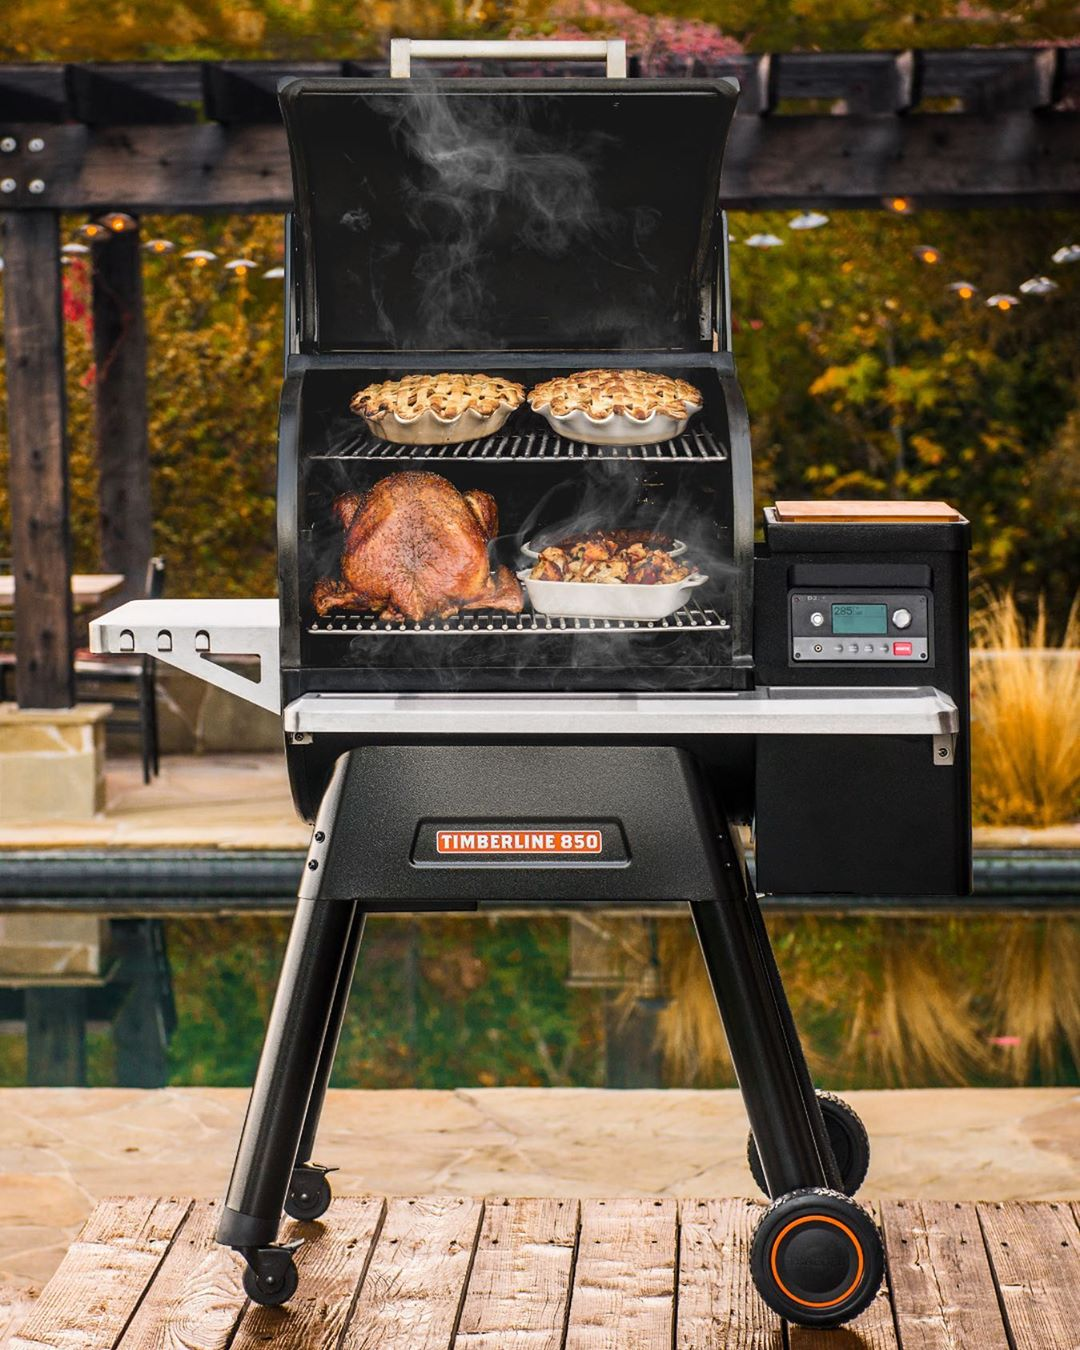 traeger grills in front of a picture of a barn